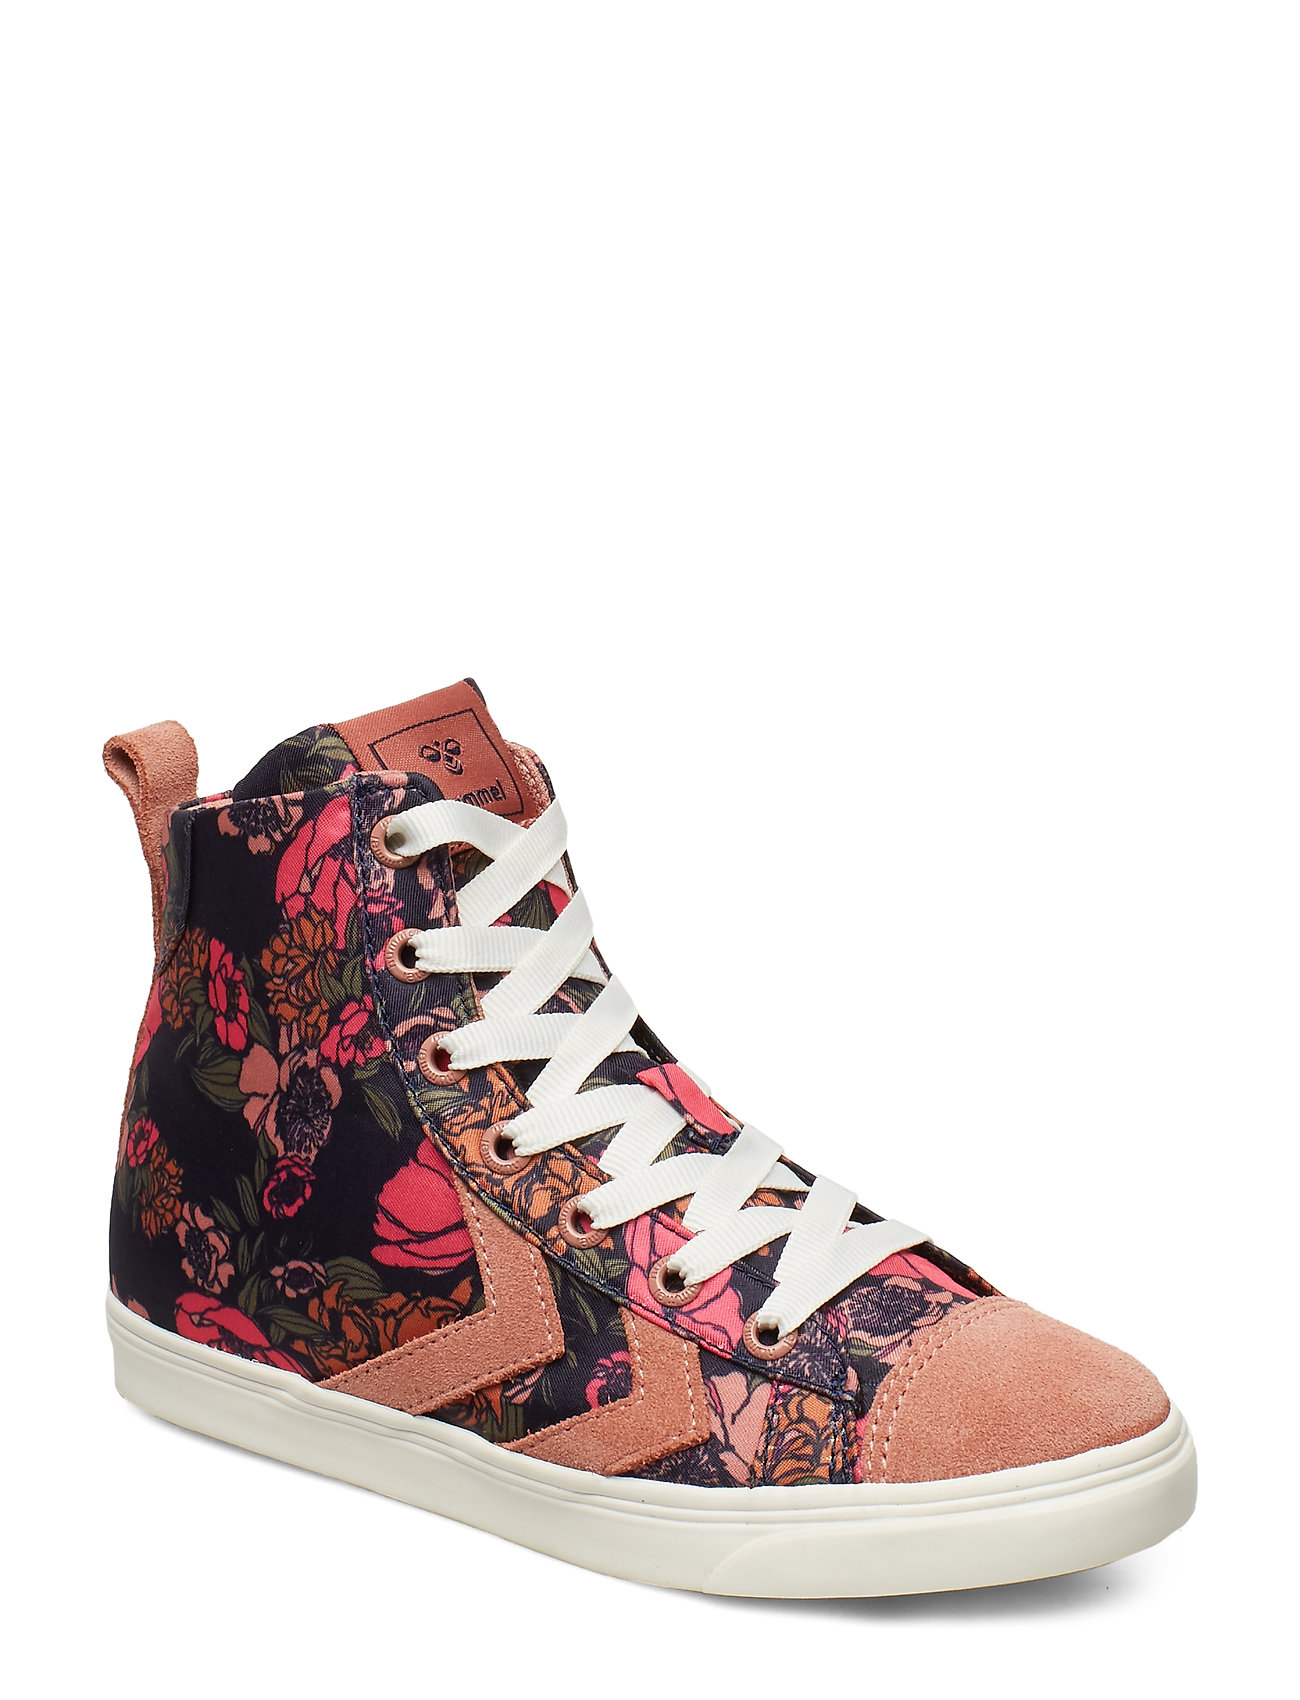 Hummel STRADA FLOWERS JR - DARK NAVY